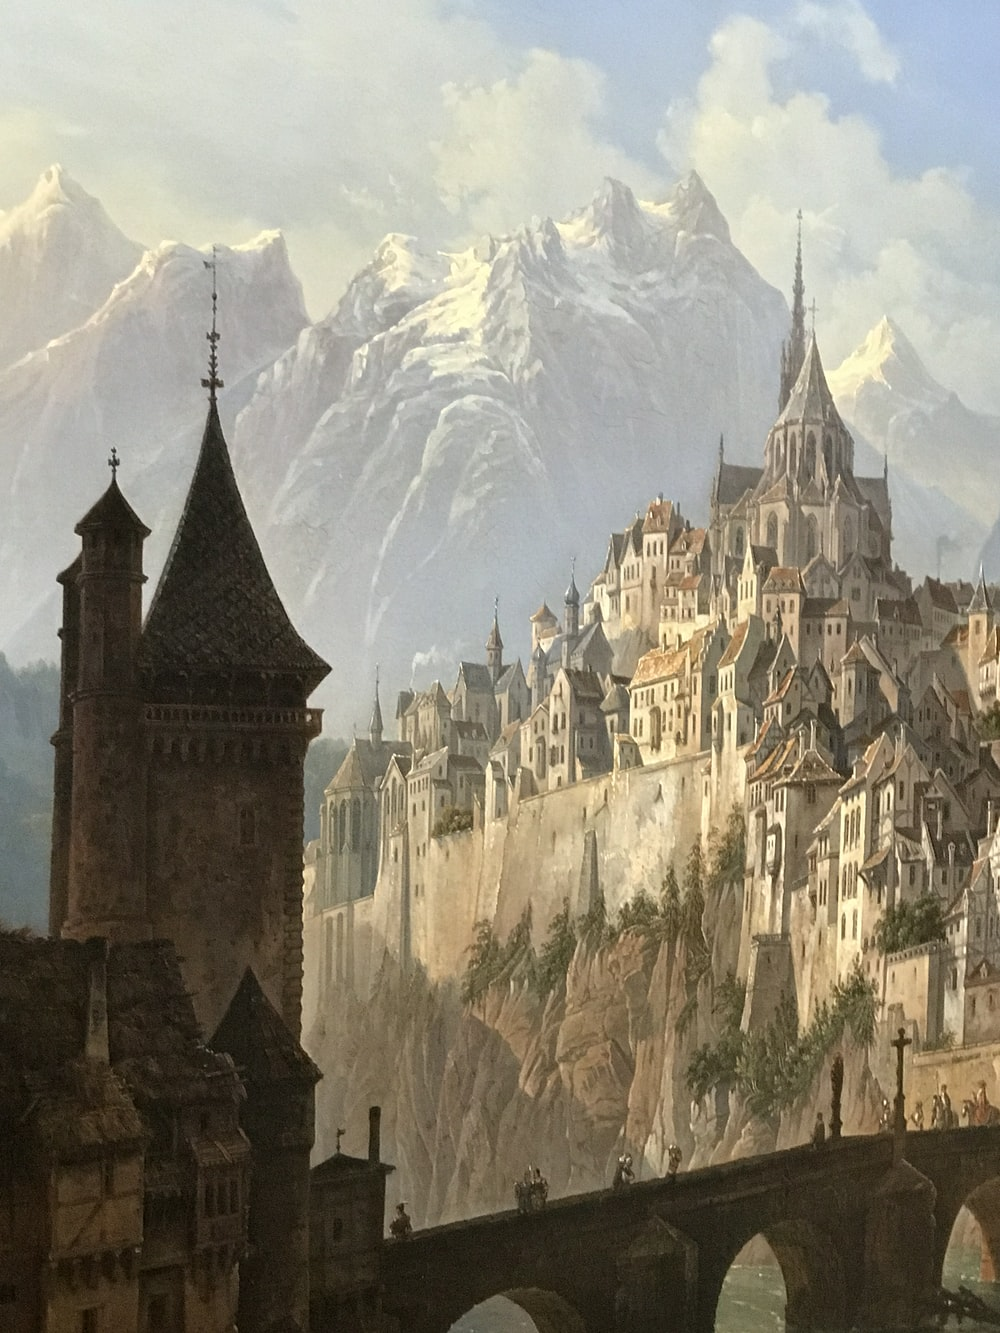 brown and gray castle near mountain